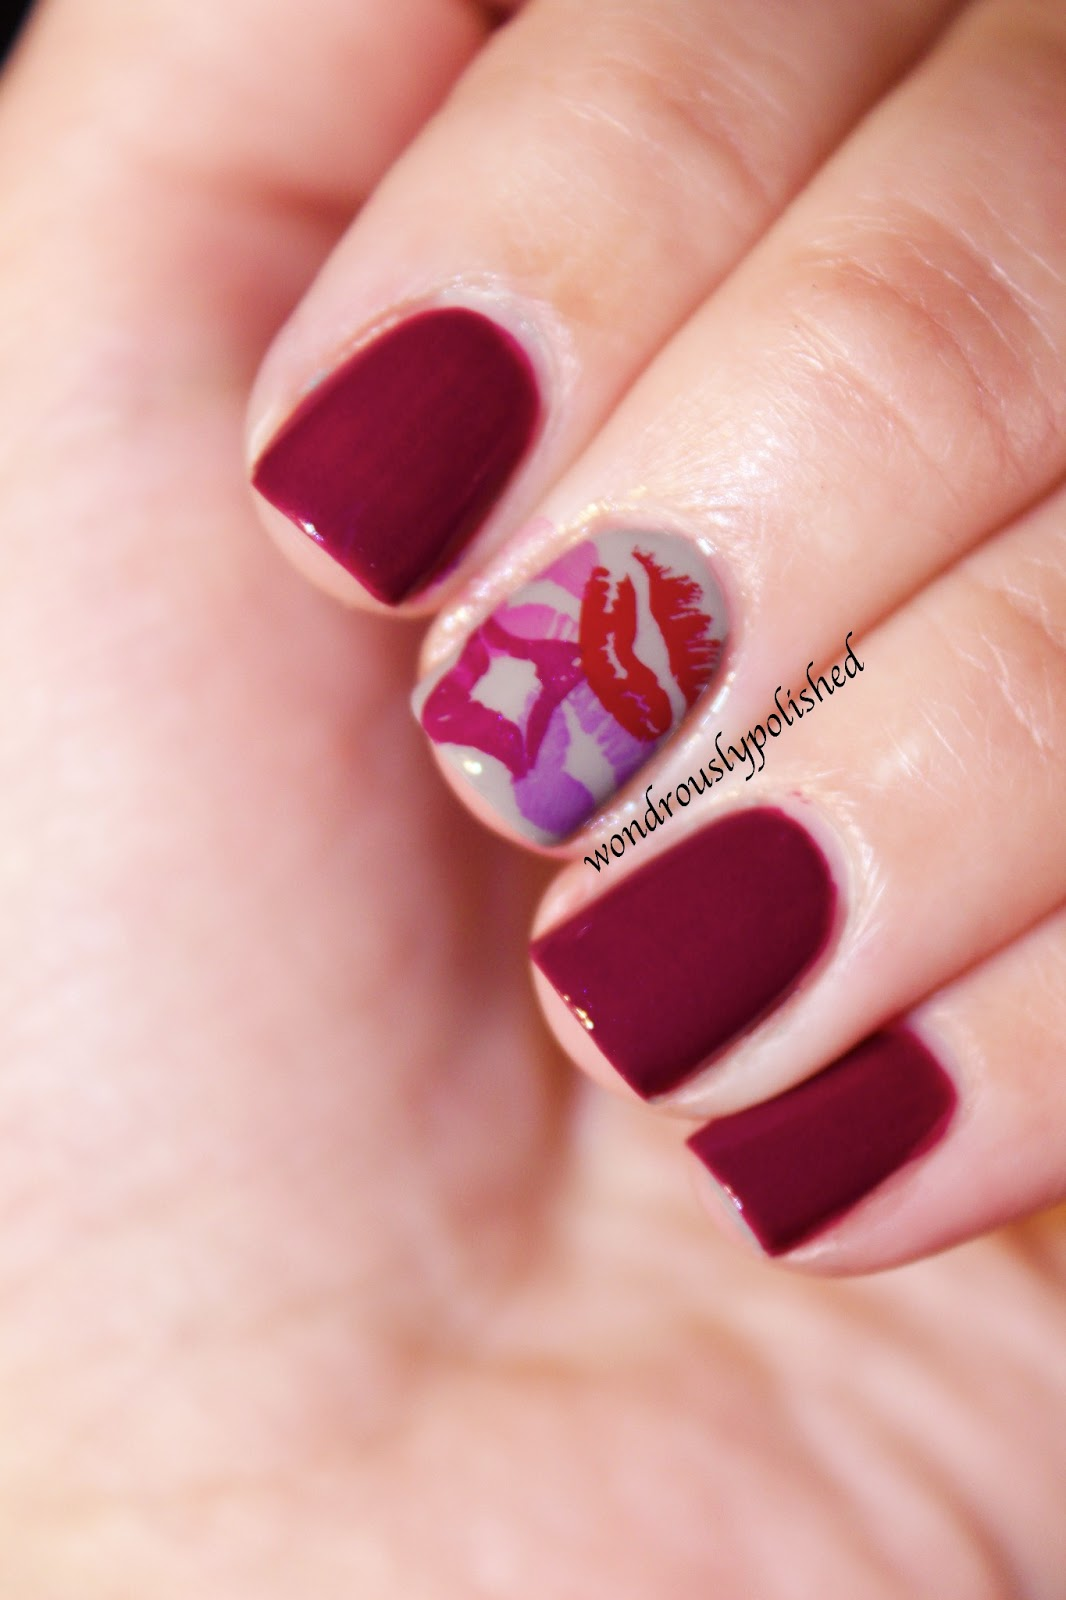 Nail Art Designs And Nail Polishes For French Manicure: Wondrously Polished: February Nail Art Challenge